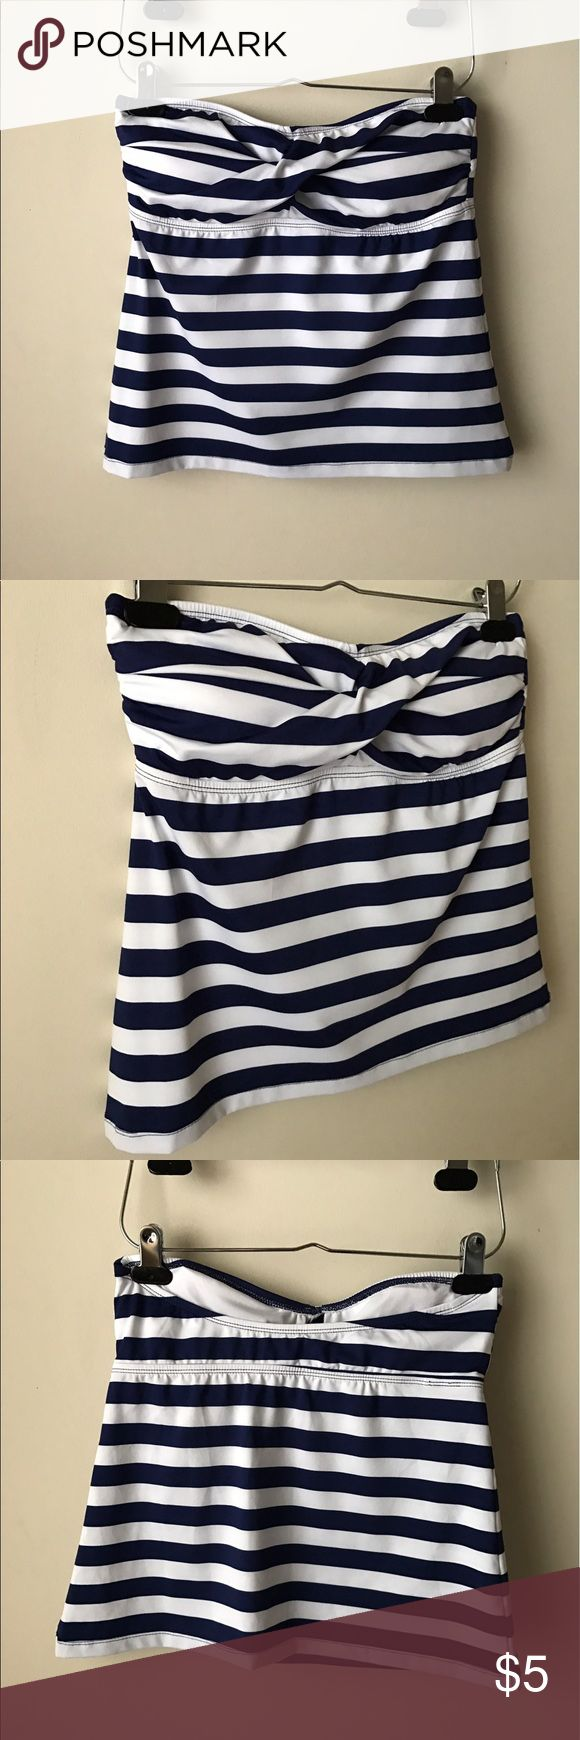 Mossimo striped tankini top Blue and white striped tankini top - removable pads - size M Mossimo Supply Co. Swim